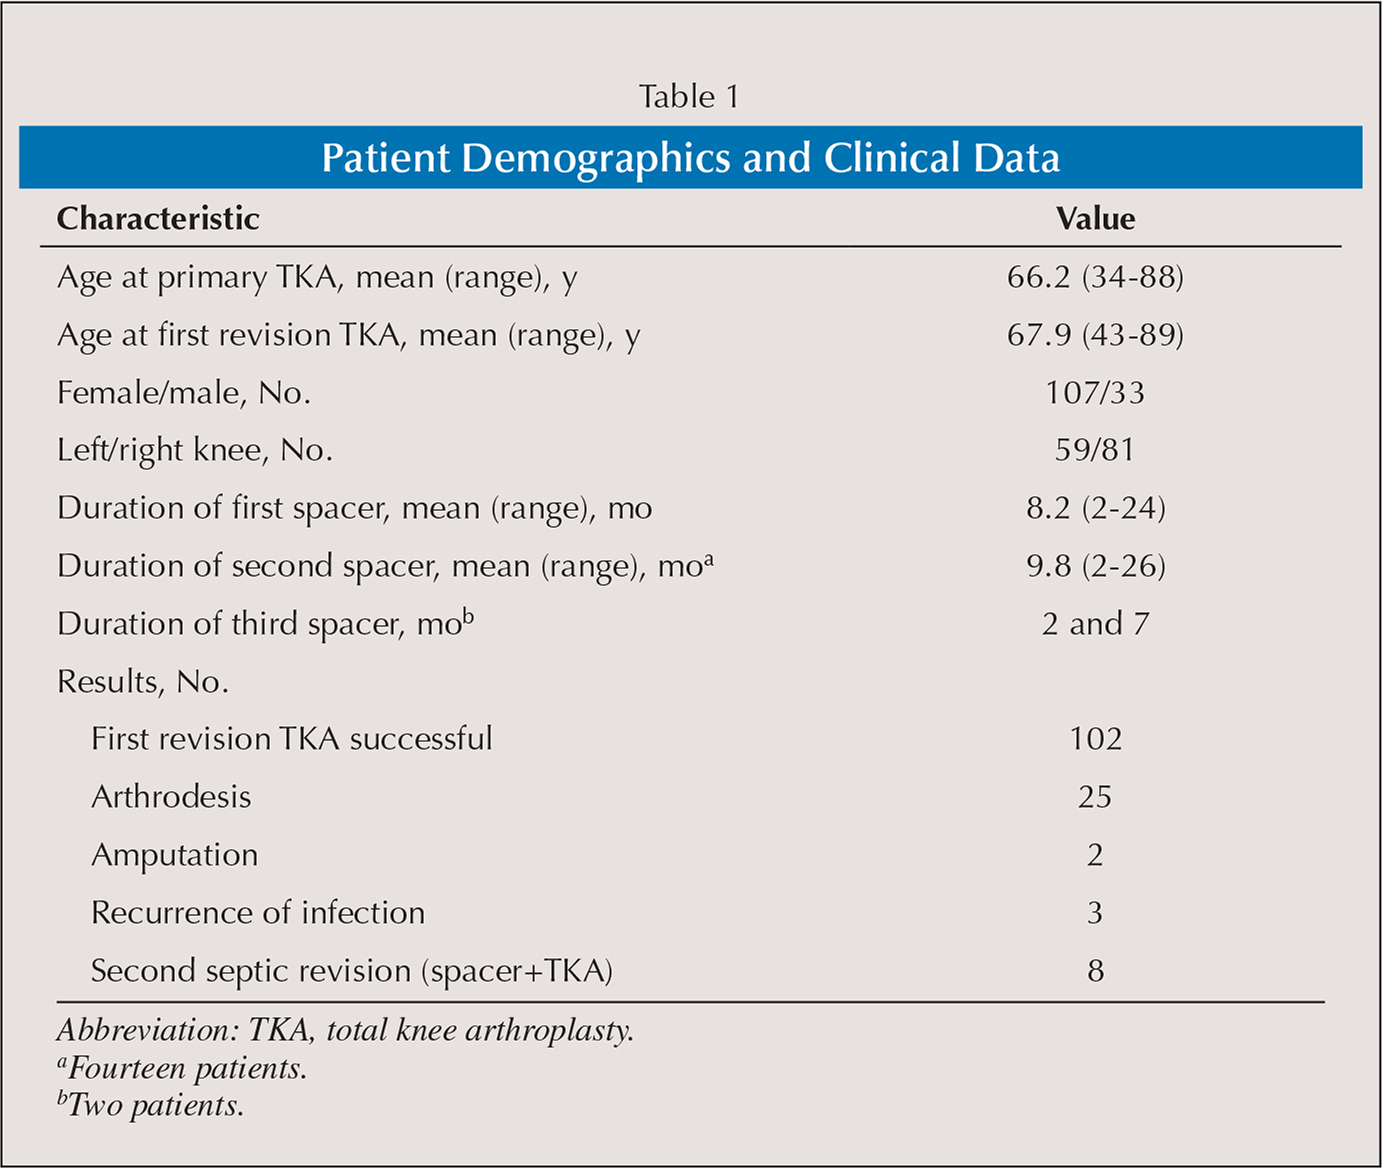 Patient Demographics and Clinical Data